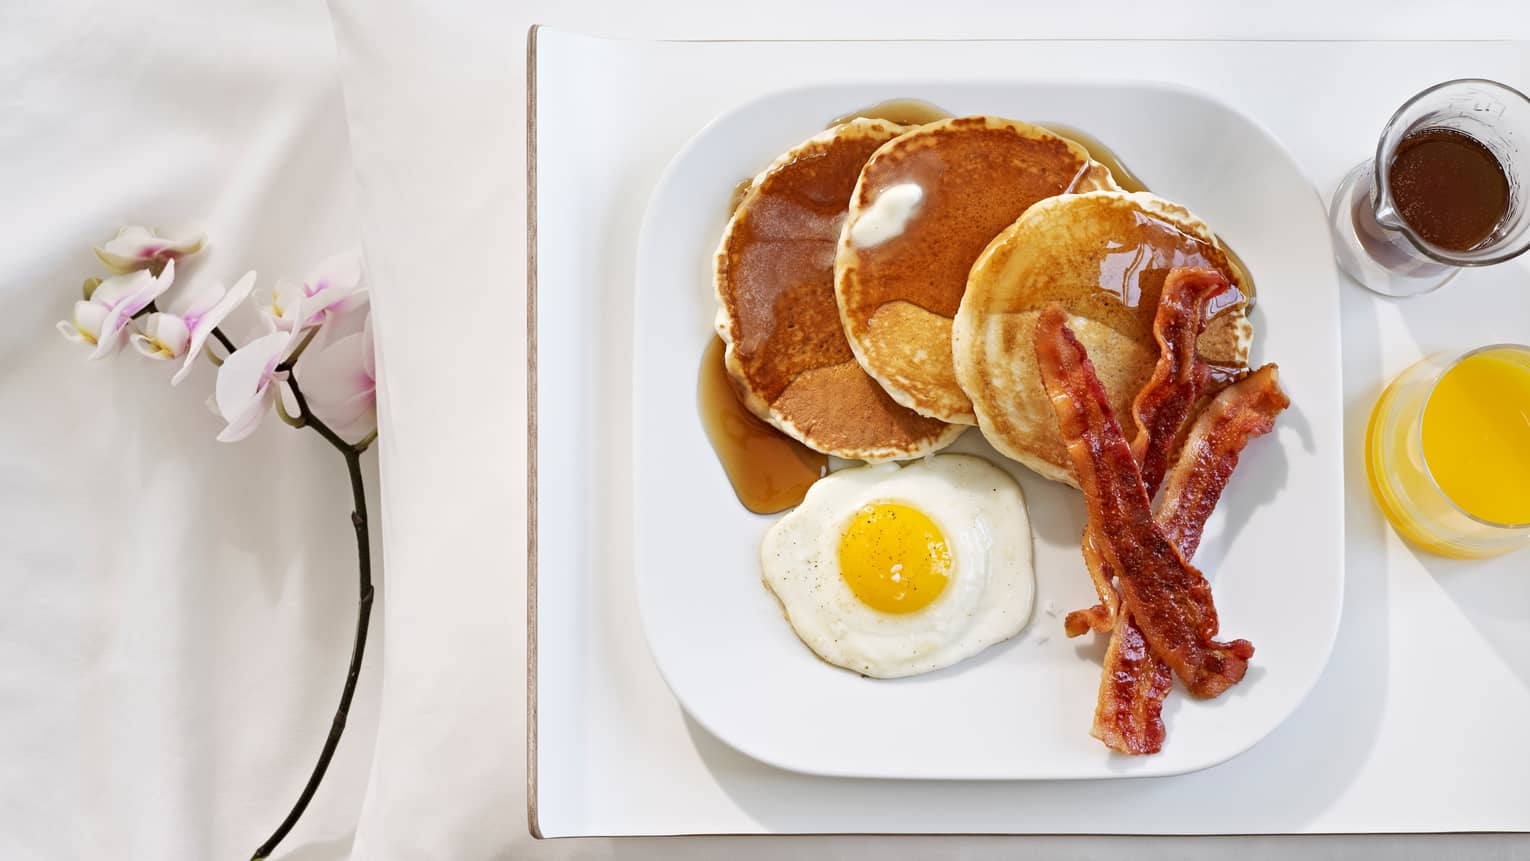 Square white plate with three pancakes, syrup, sunny-side egg, bacon and fresh juice on tray, orchid stem